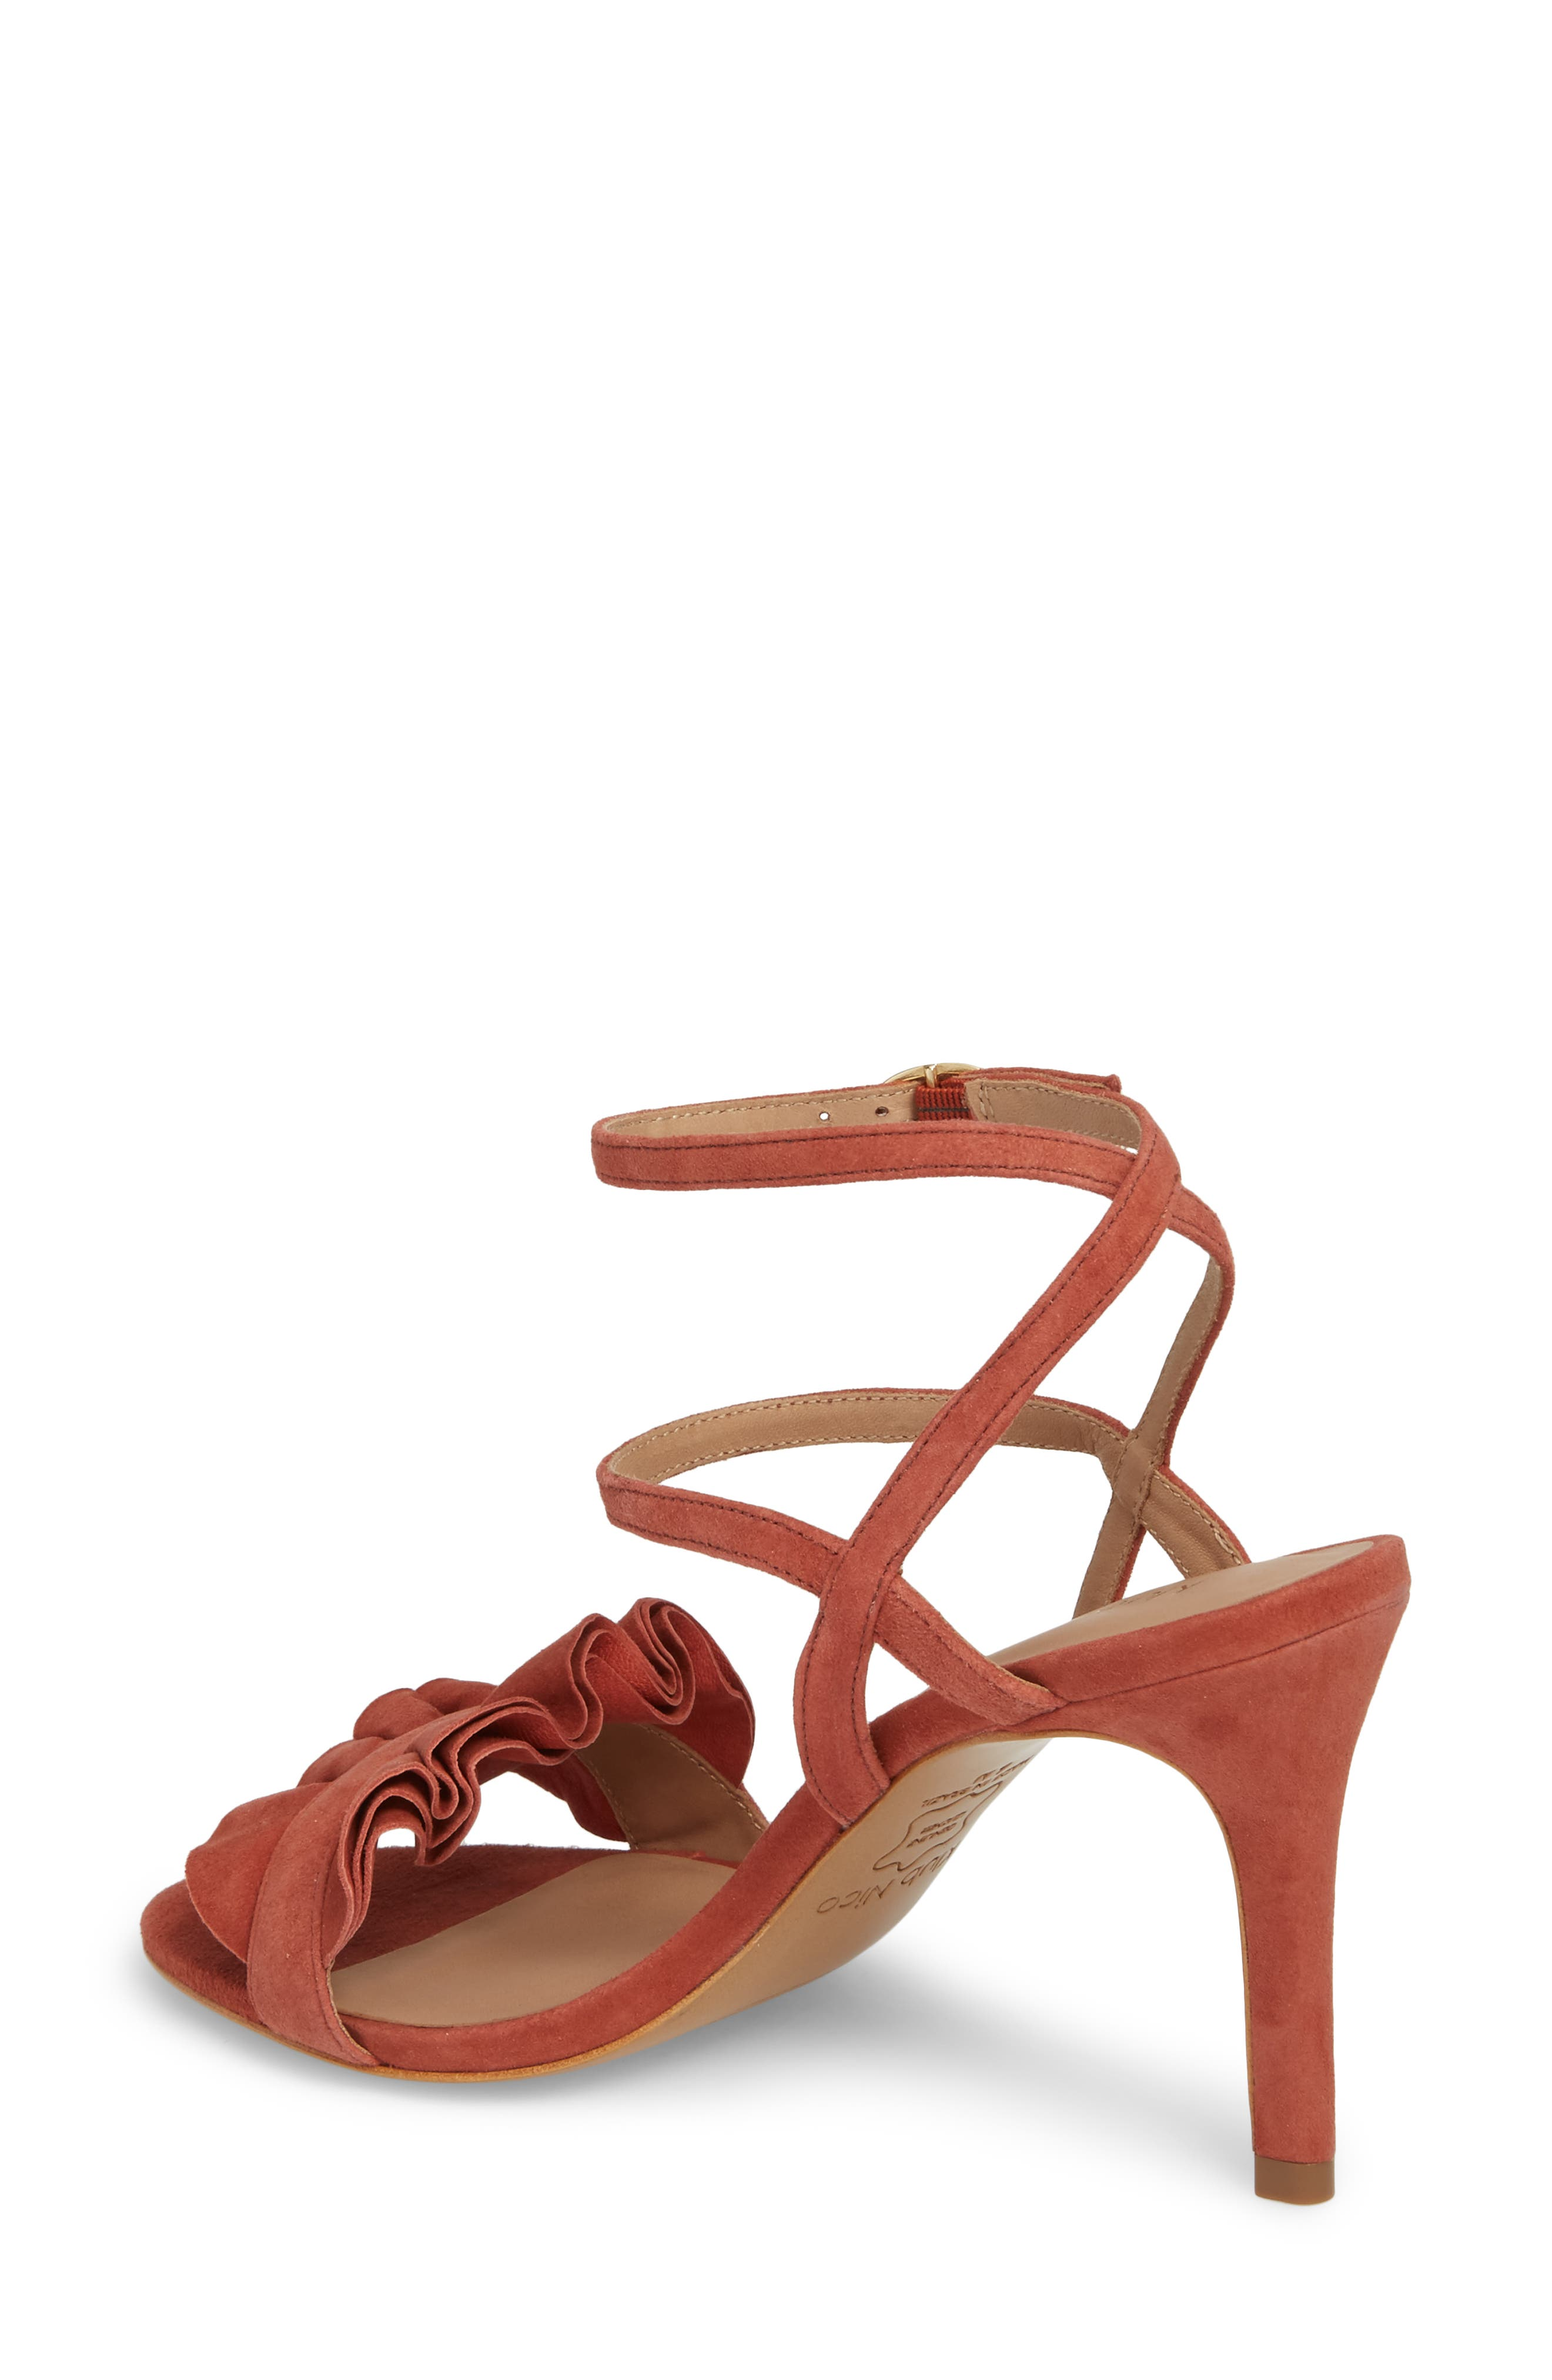 Ansley Sandal,                             Alternate thumbnail 2, color,                             Spice Suede